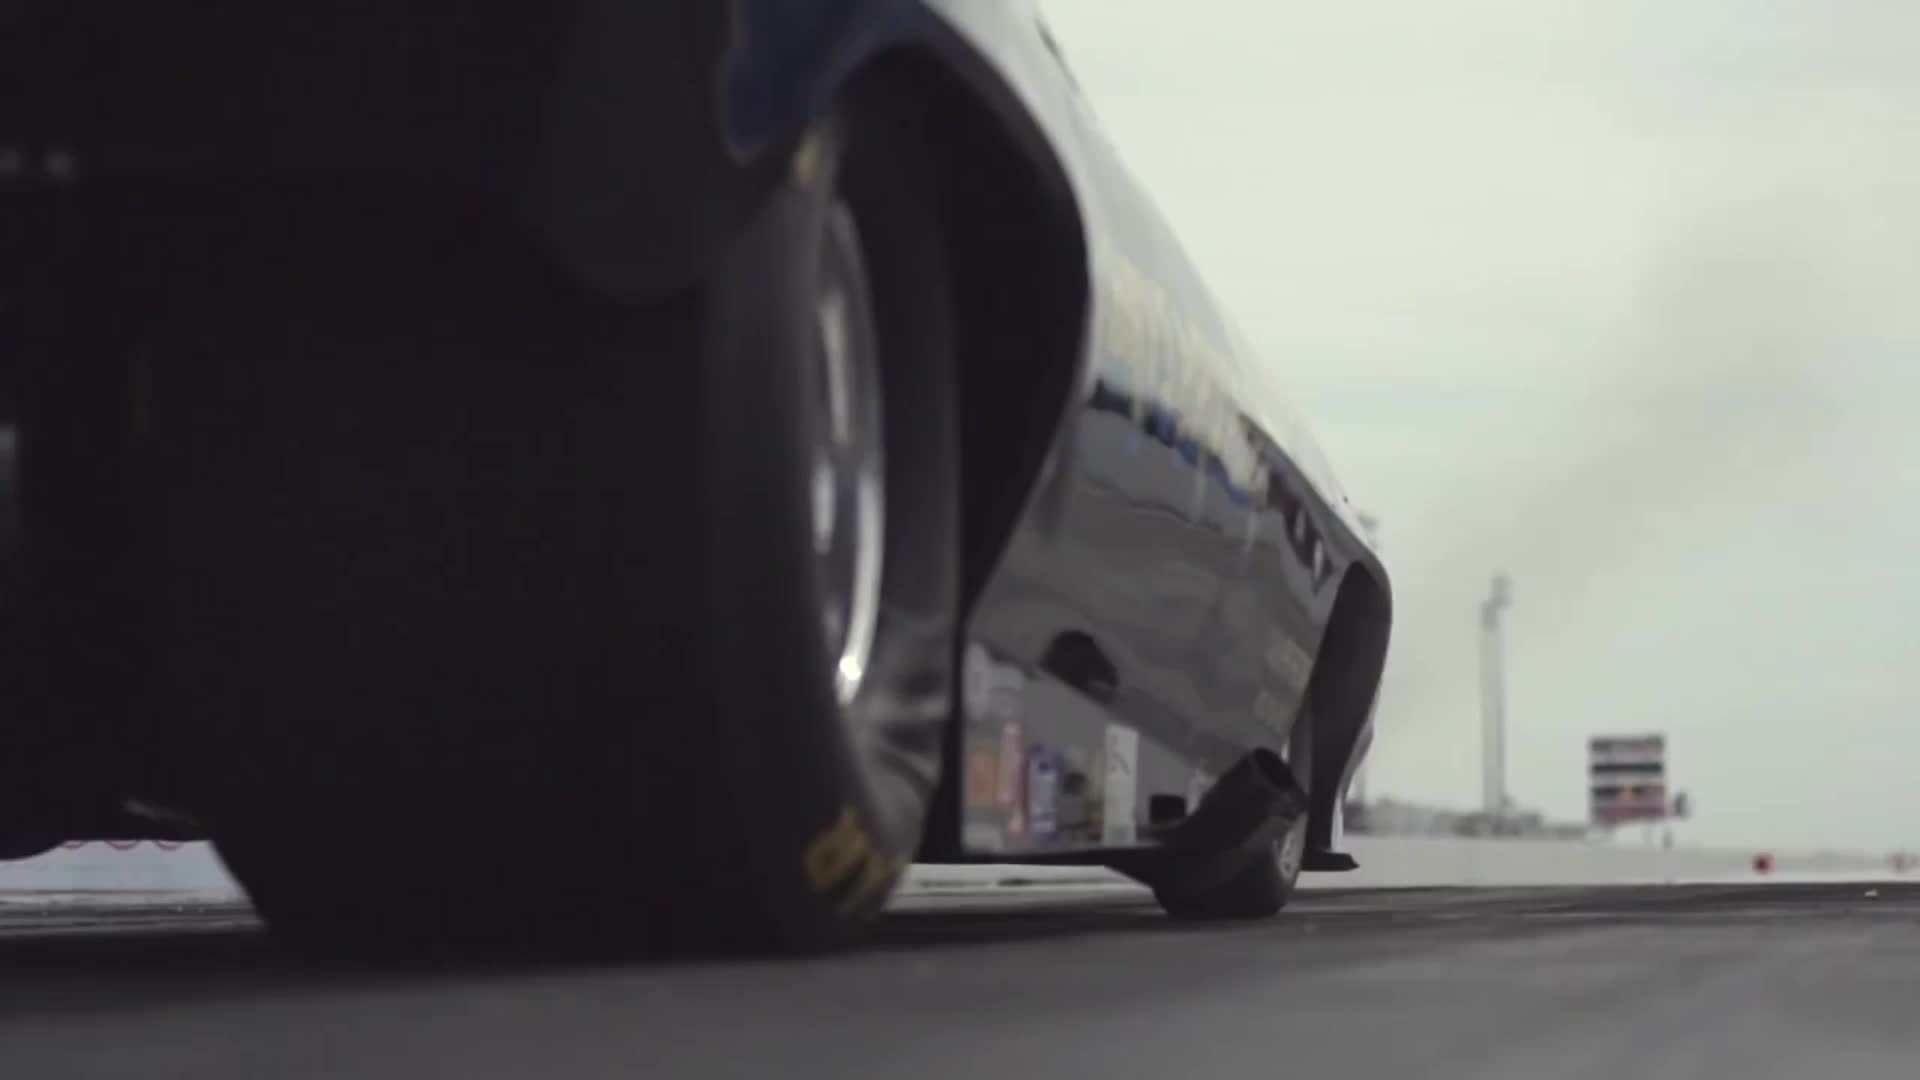 interestingasfuck, interestinggifs, Funny Car tire wrinkle and violent tire shake GIFs